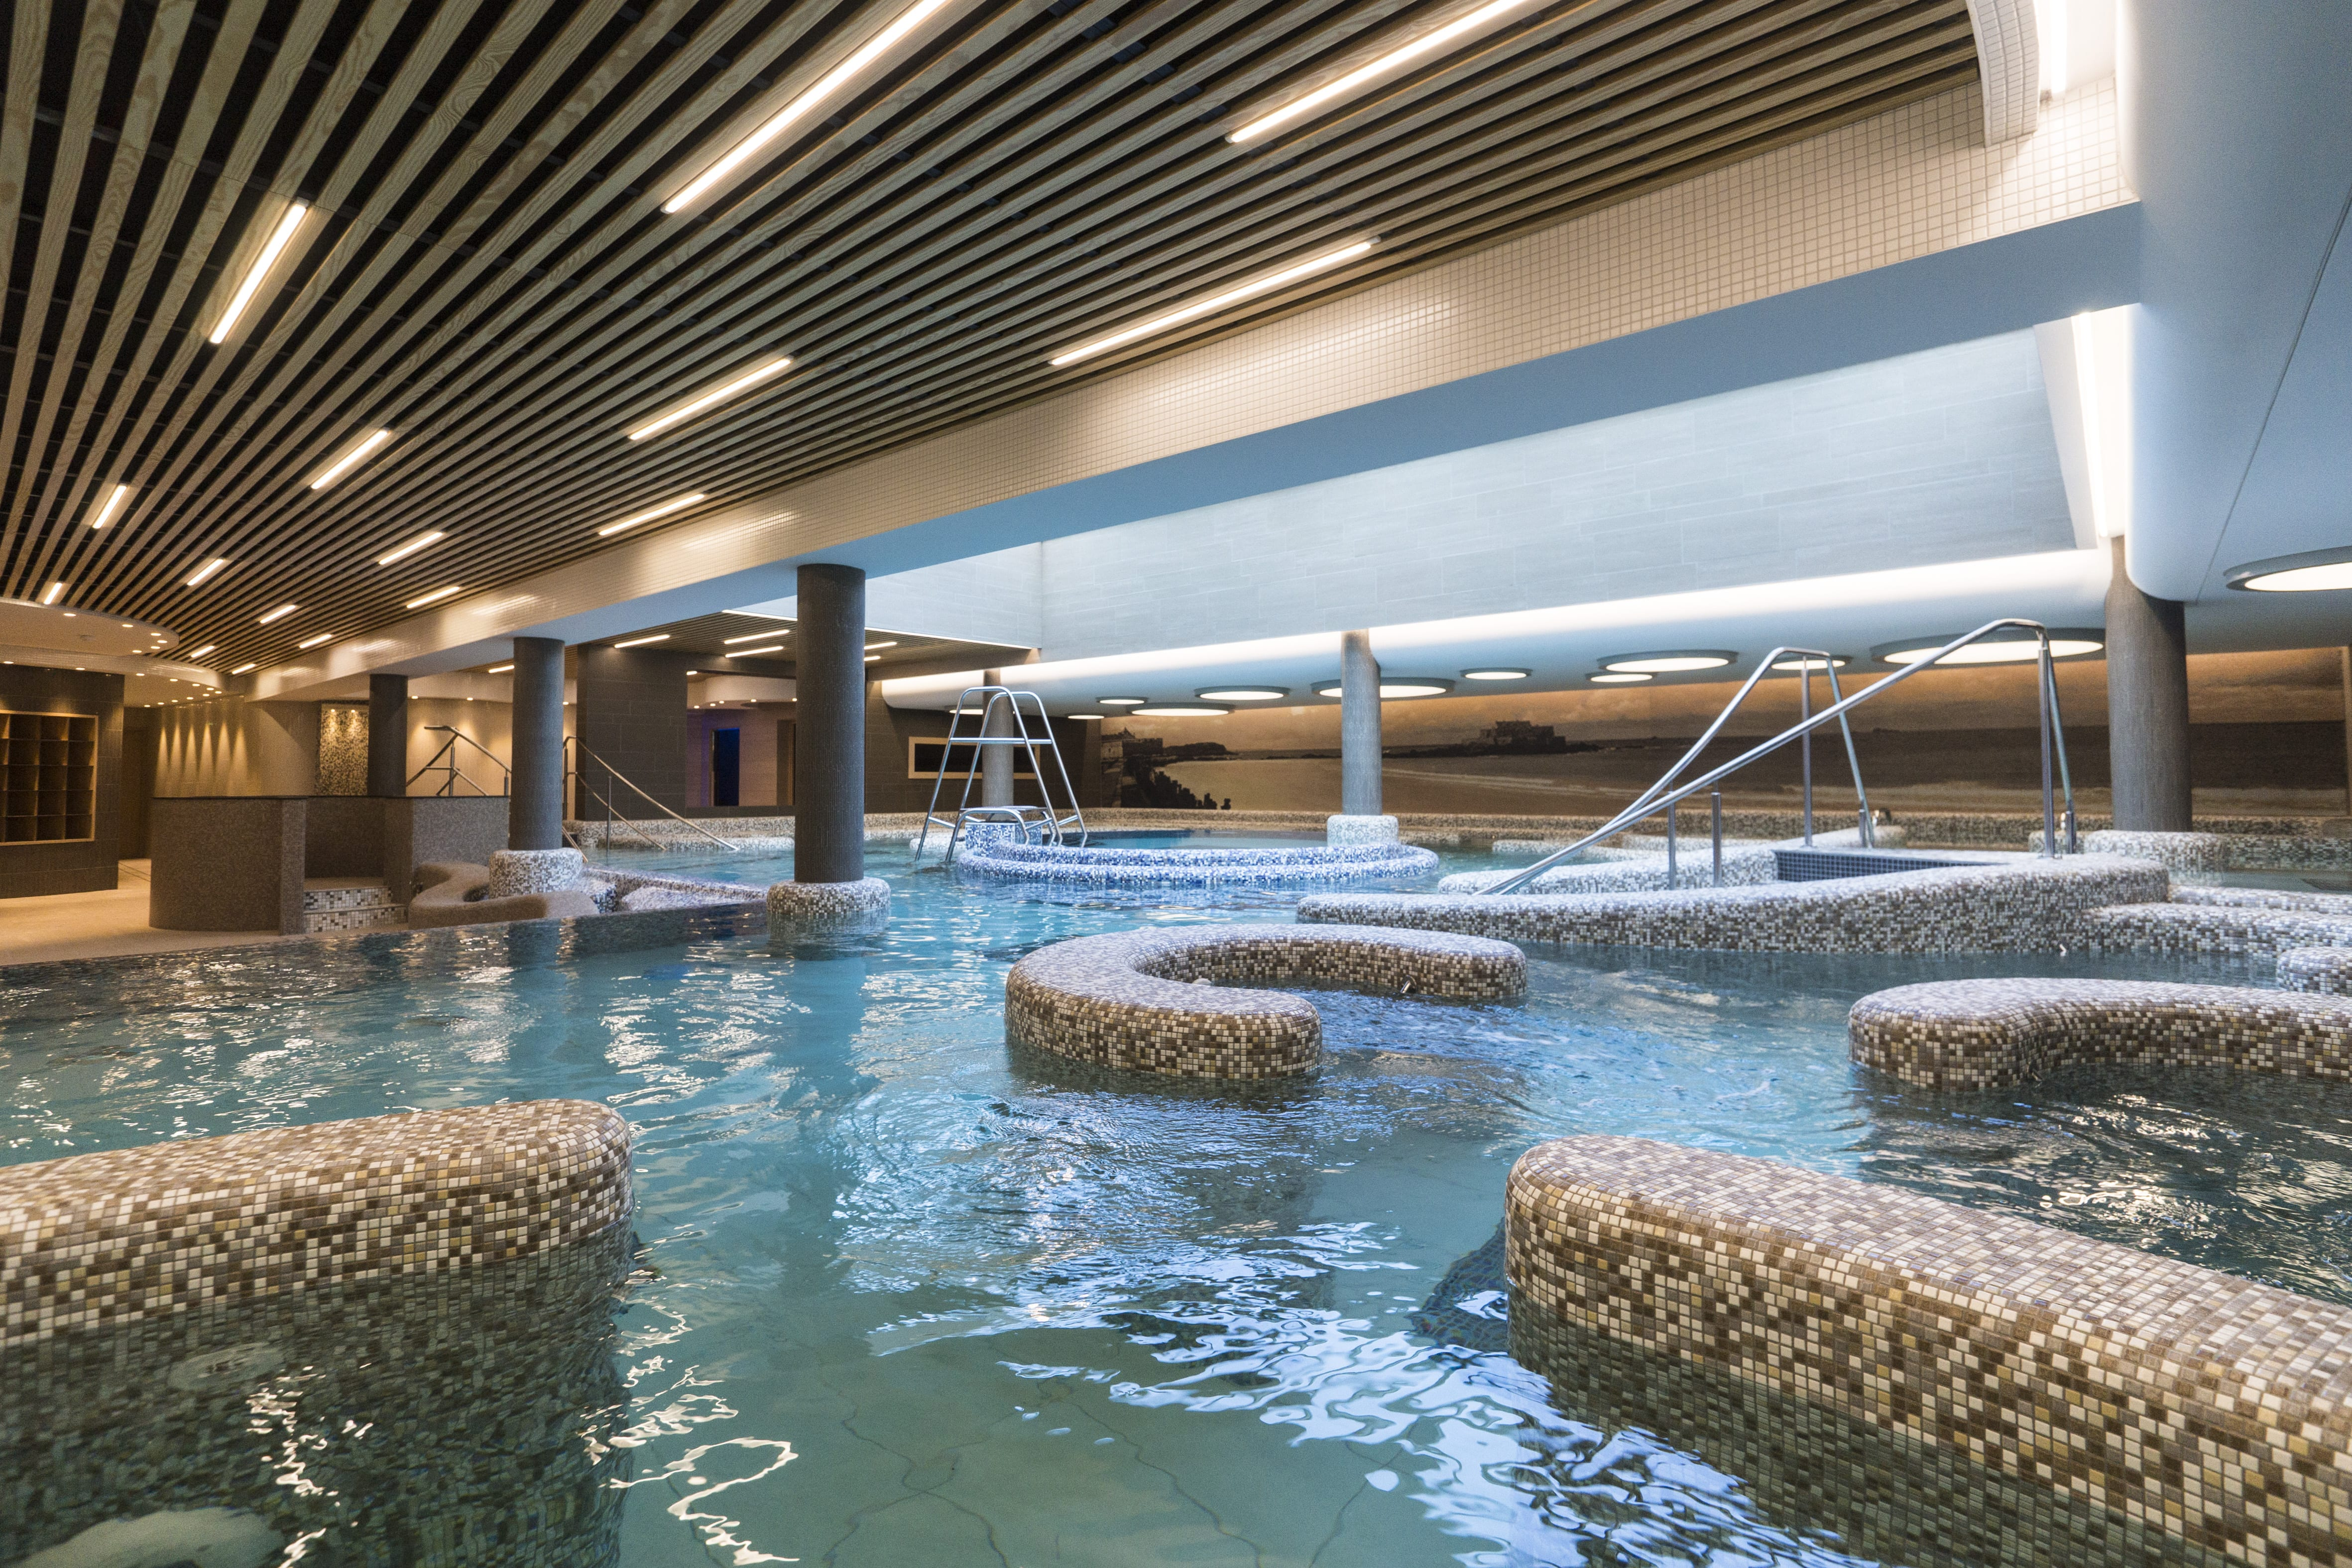 Grand Hôtel des Thermes spa and thermal waters